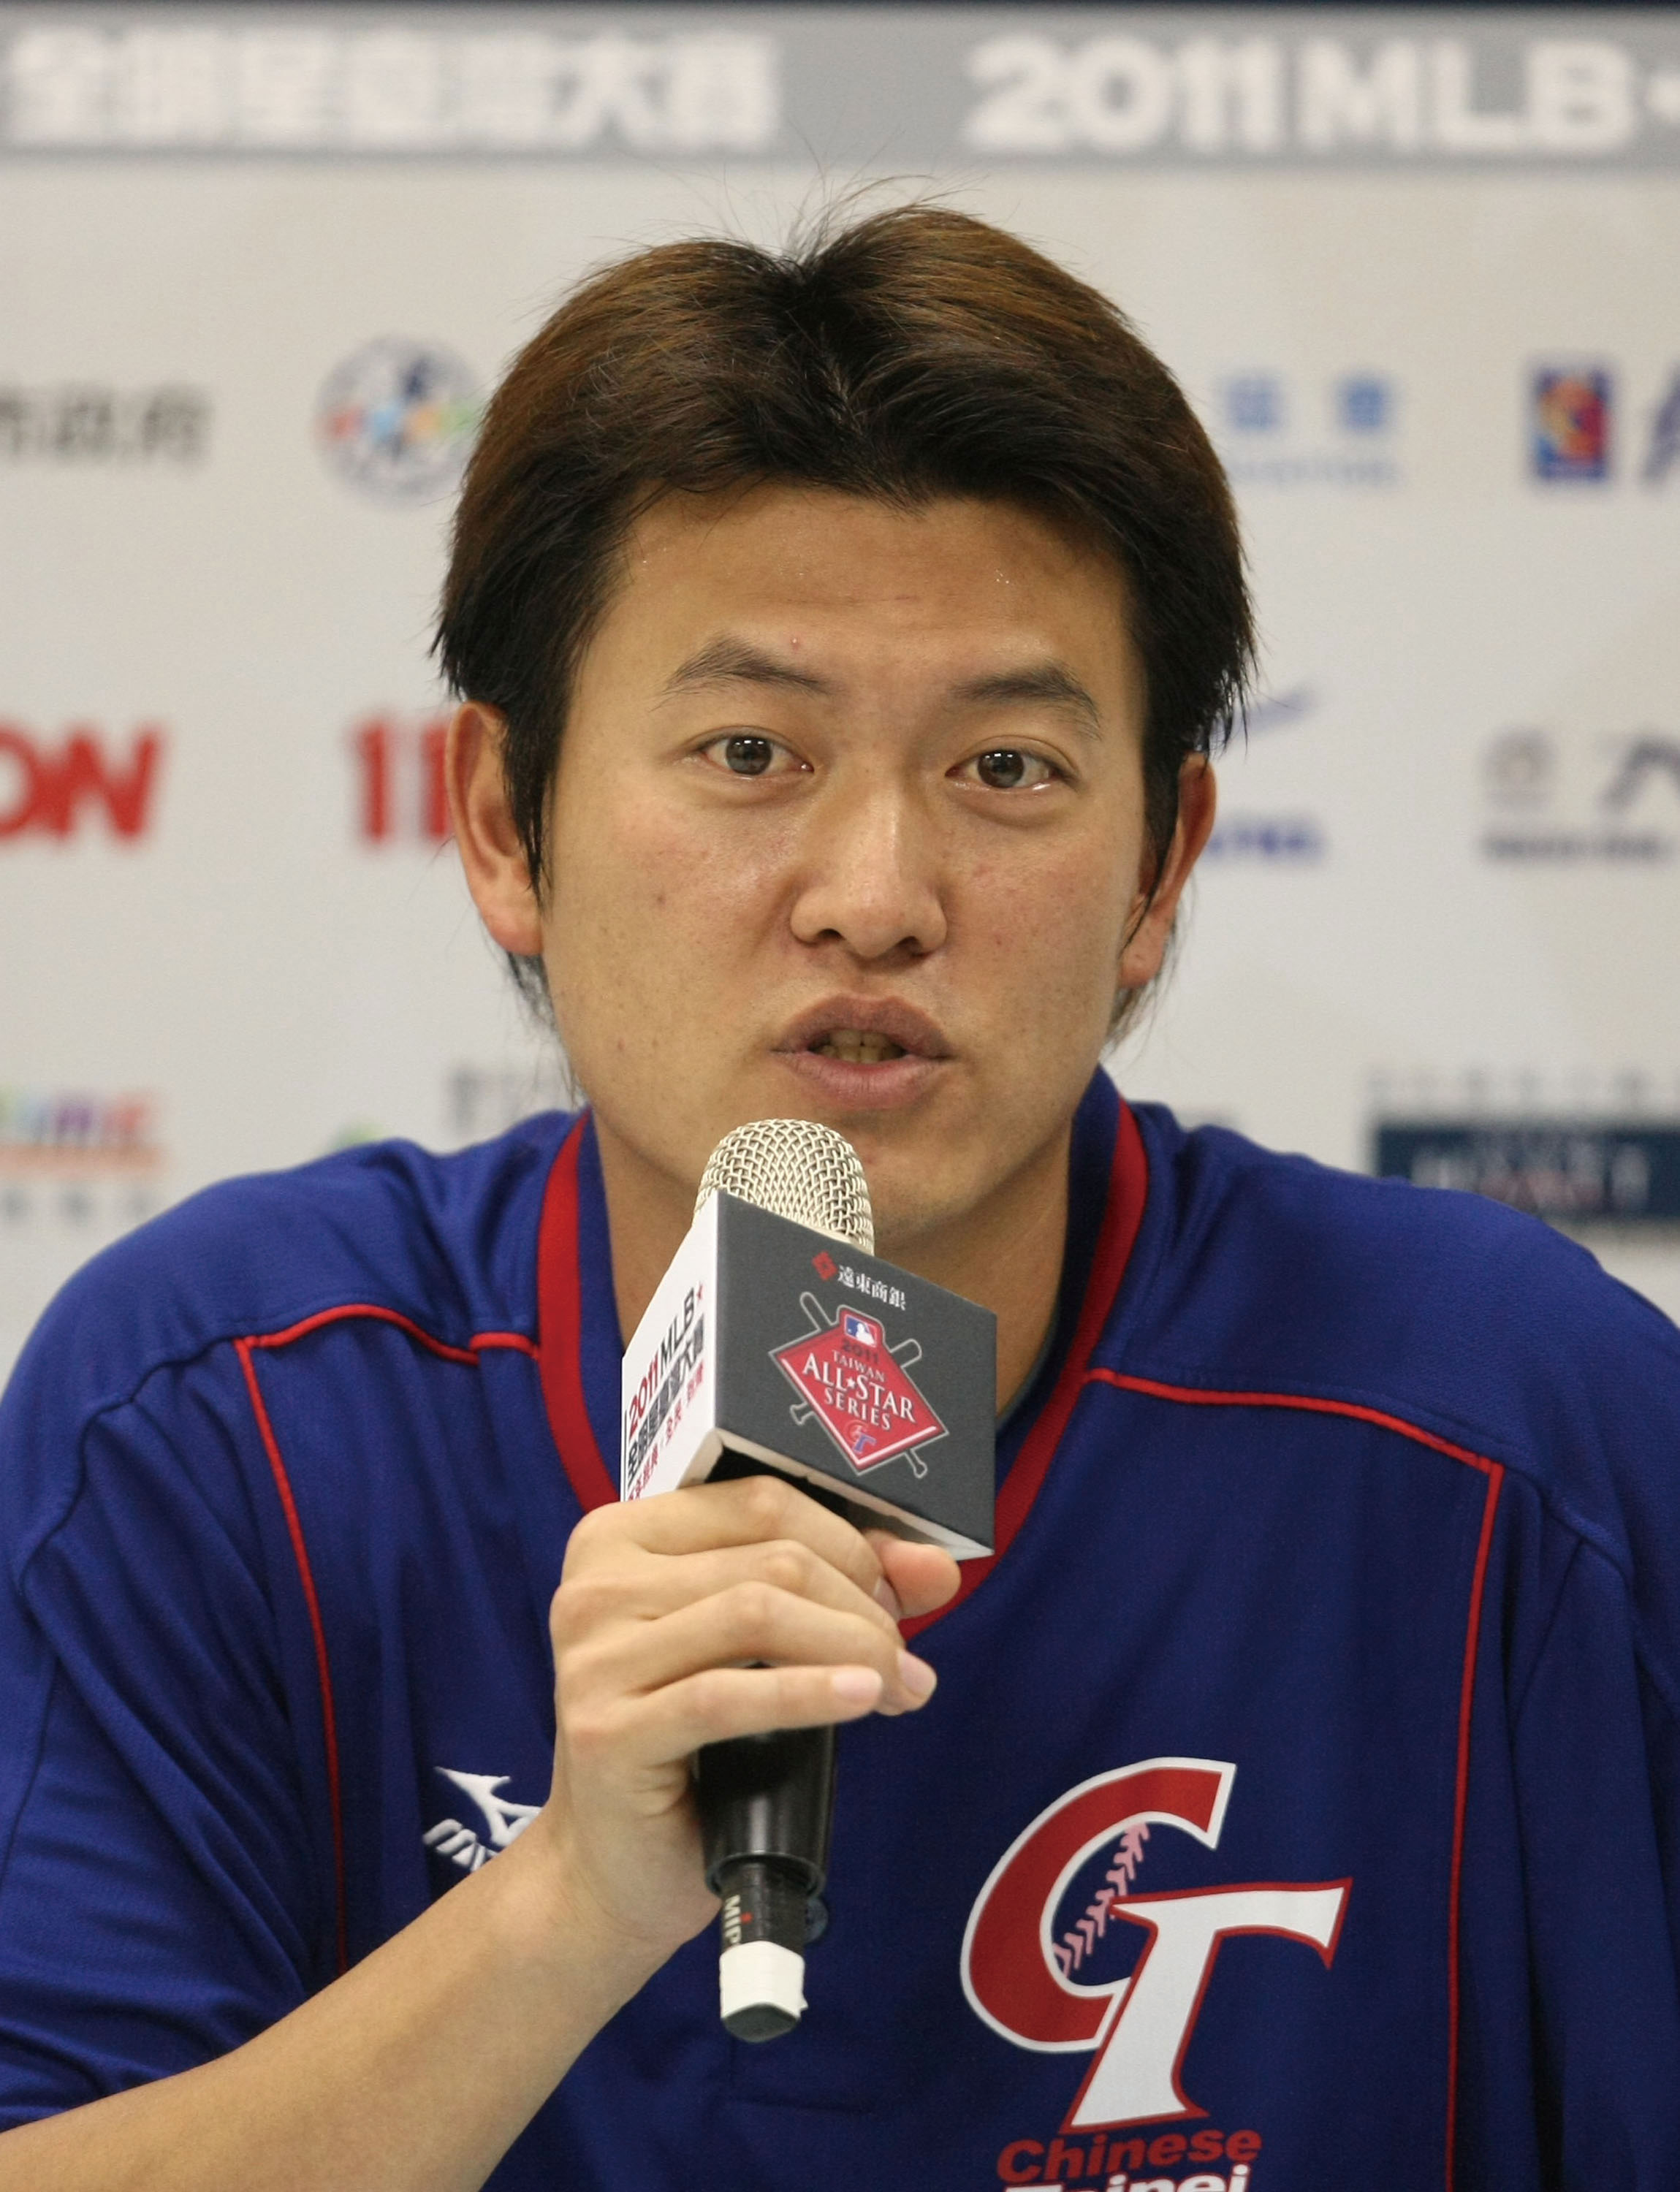 Taiwanese pitcher Chien-Ming Wang says he's happy and satisfied with his new one-year contract with the Washington Nationals at the news conference Sa...